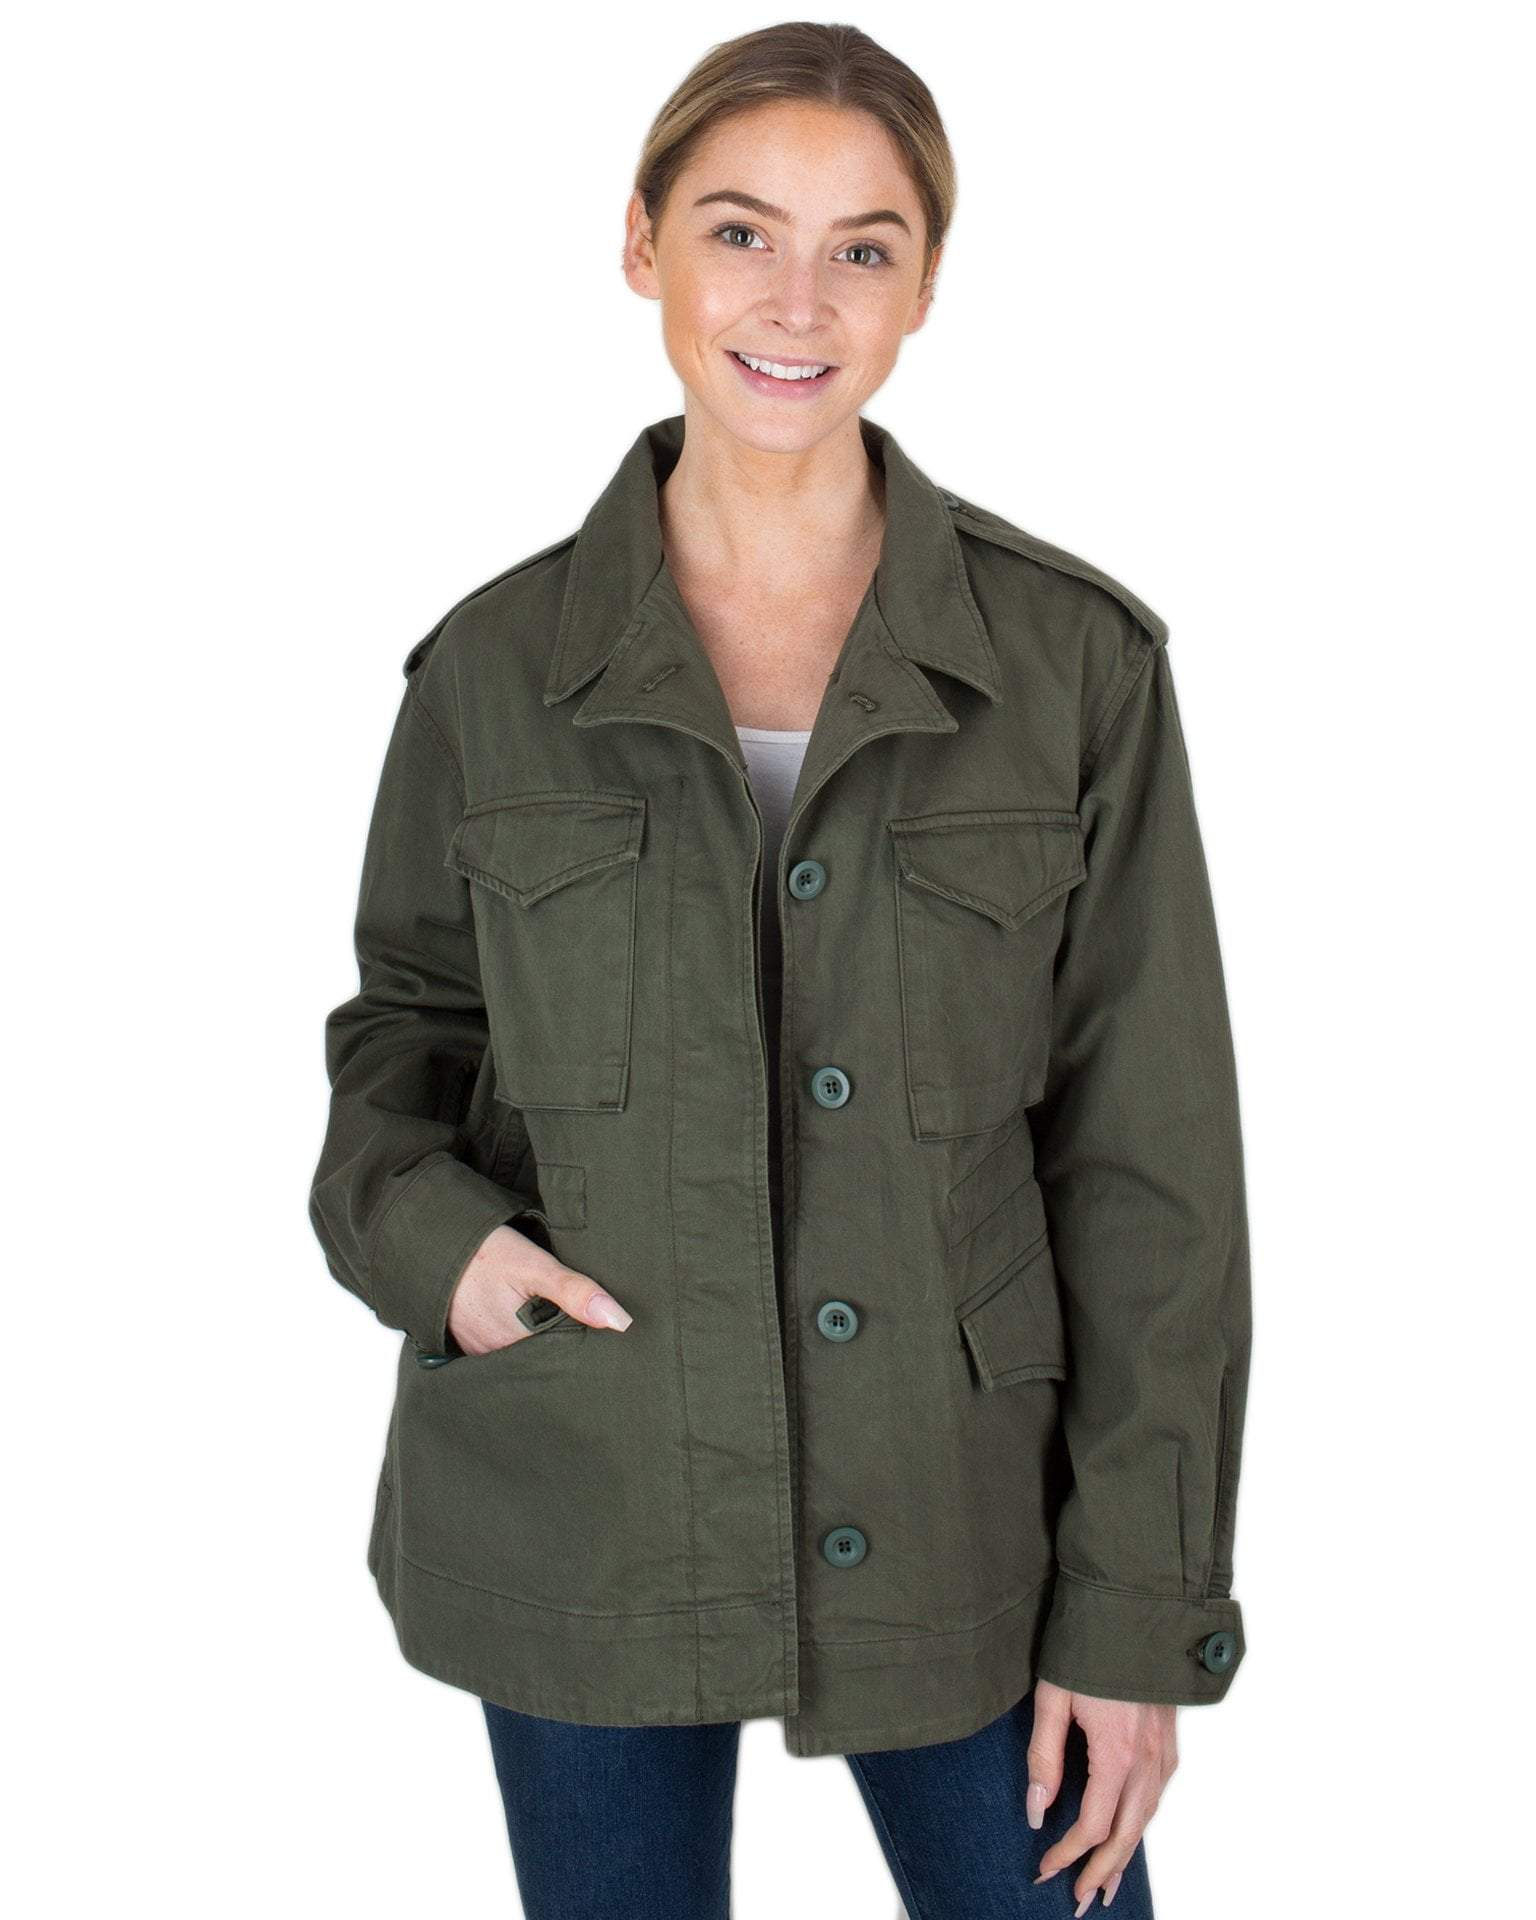 Citizen's of Humanity Clothing Field Green / XS Ada Jacket